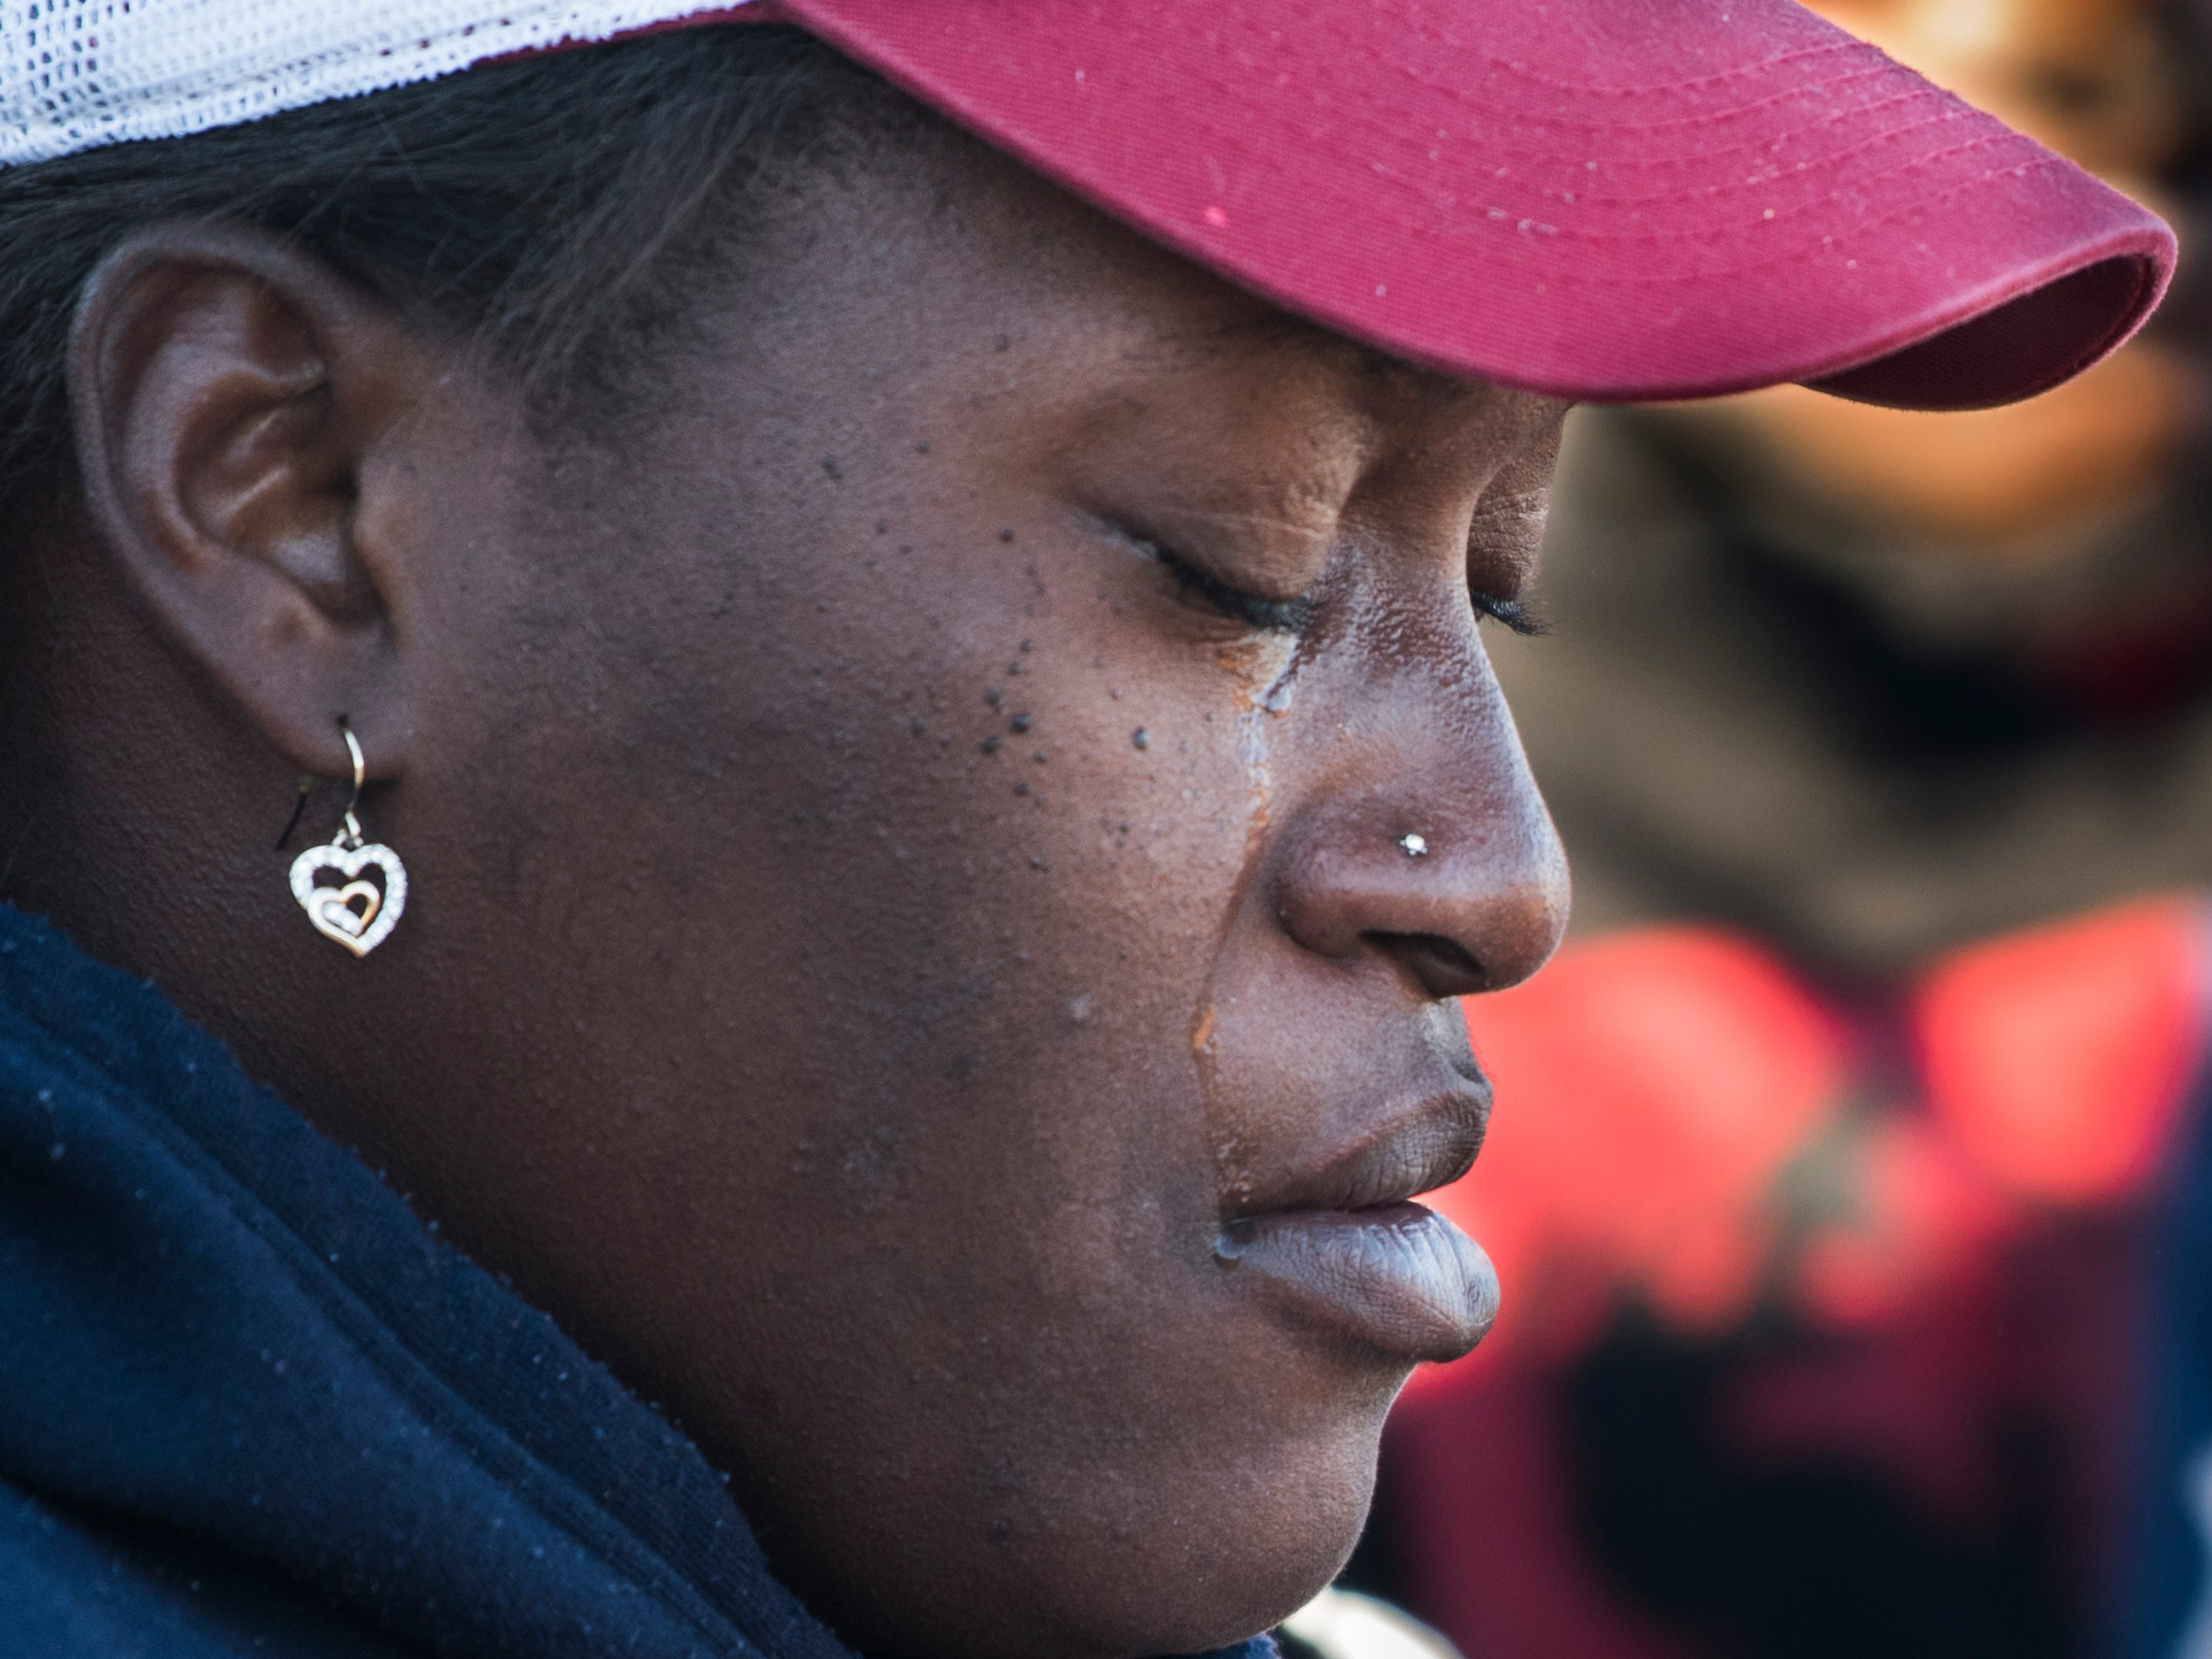 Tiffany Williams sheds a tear during a vigil for her daughter, Keiauna Williams, across from Carver High School in Montgomery, Ala., on Tuesday, Dec. 4, 2018. Williams was died after being hit by a car Saturday night.